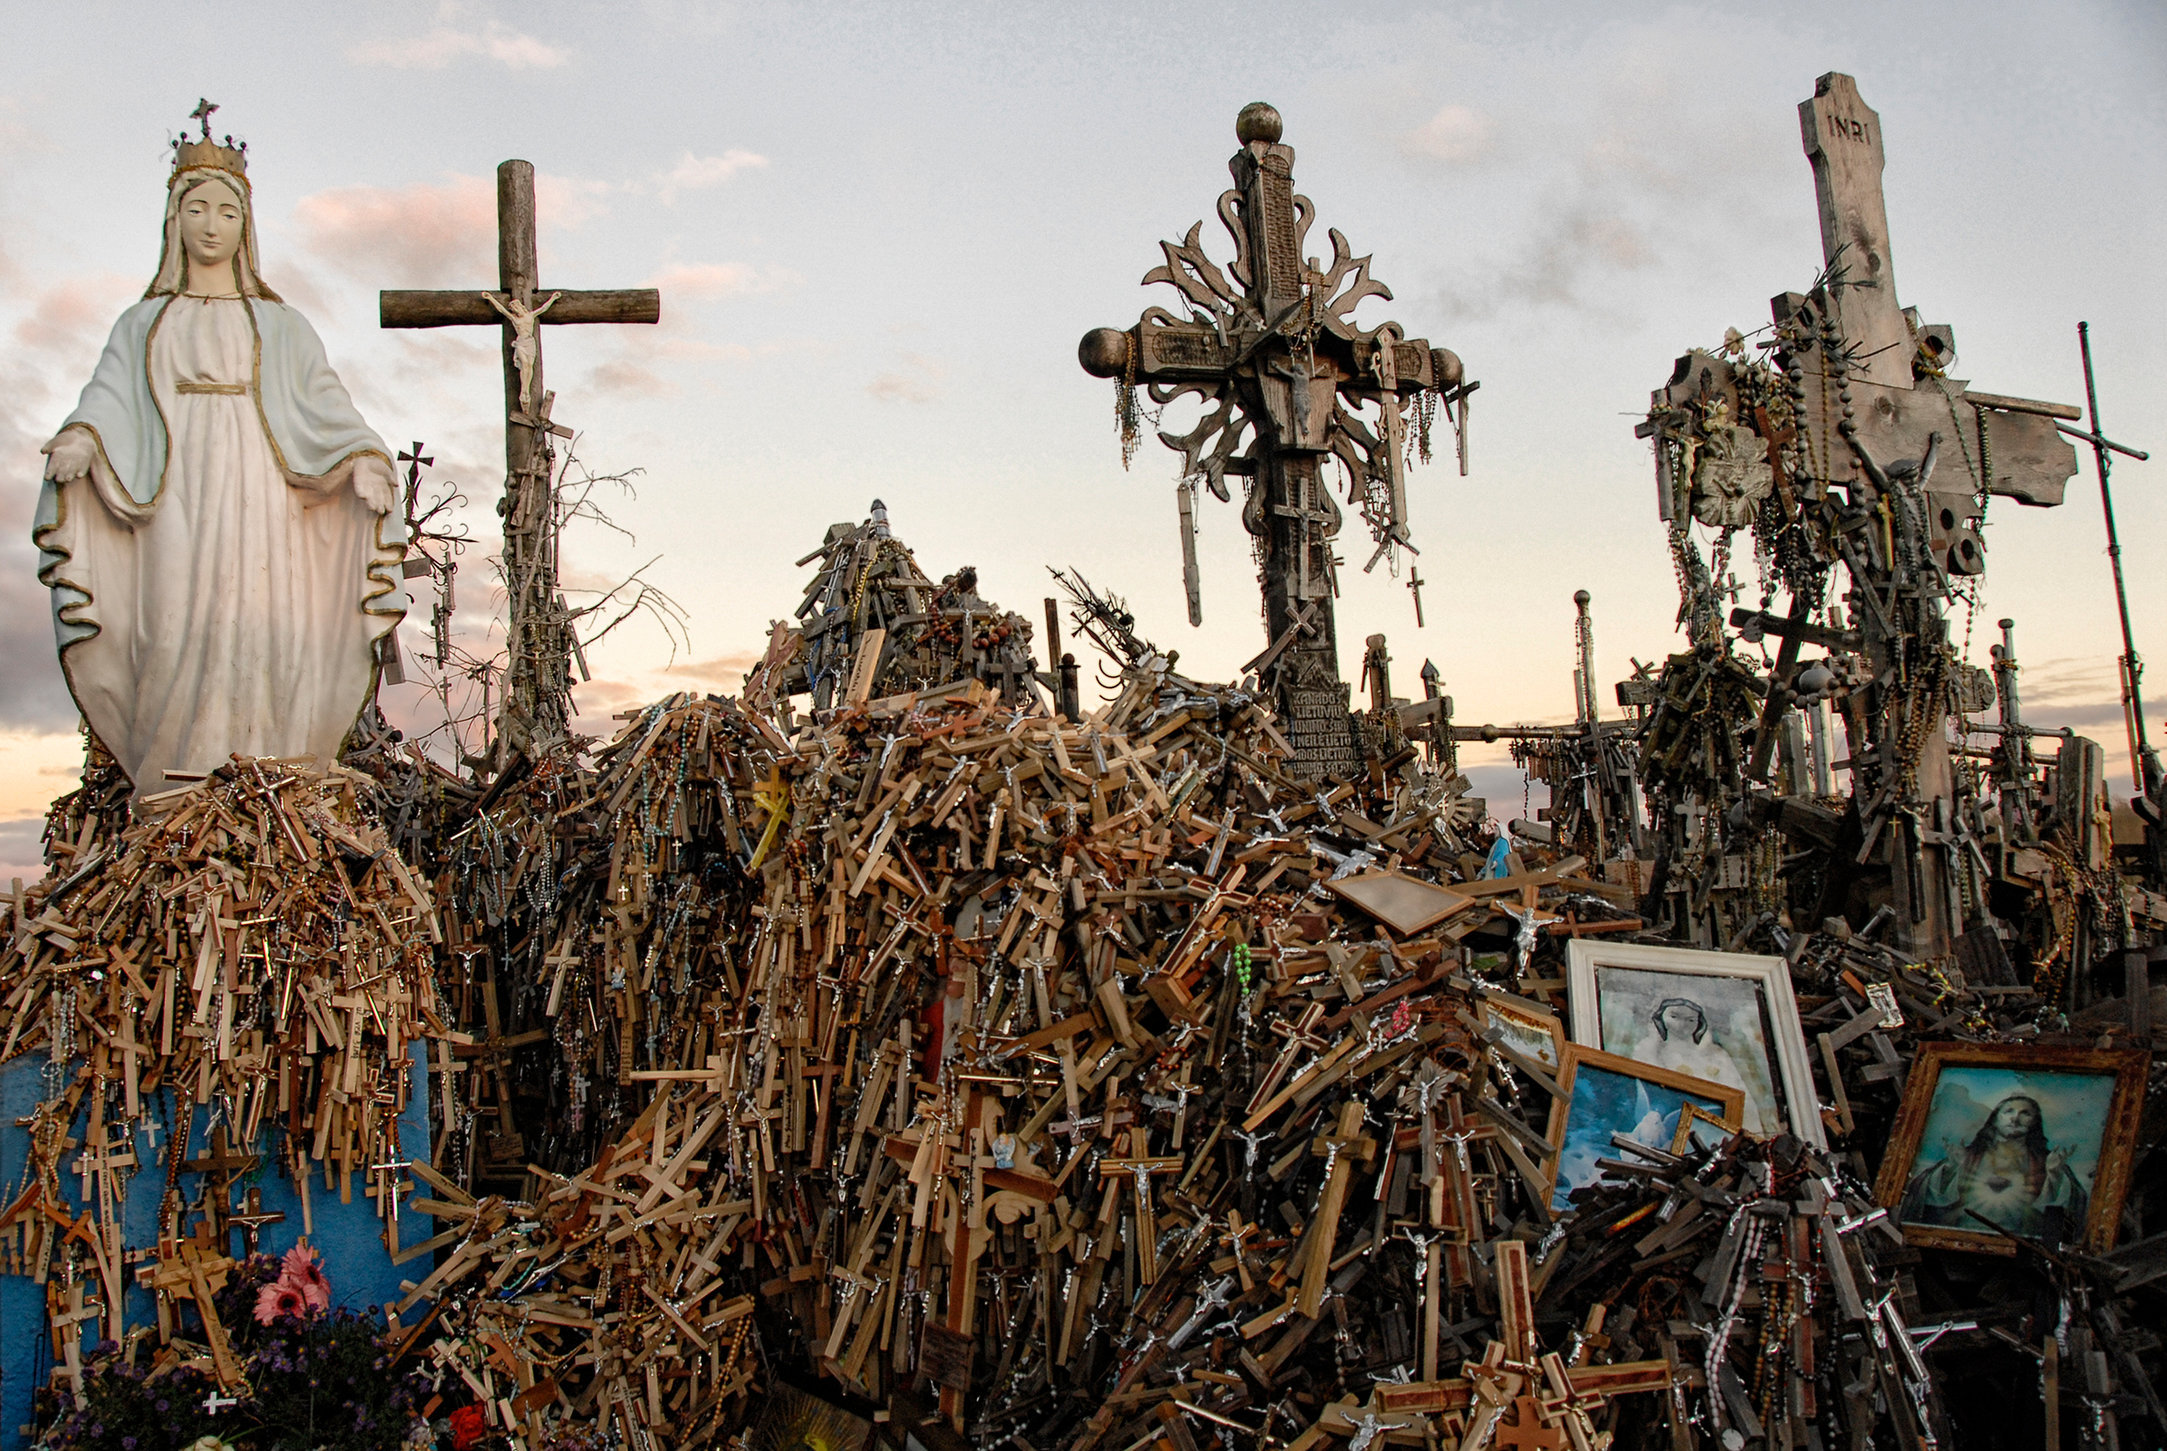 Hill of crosses, Lithuania, 2013